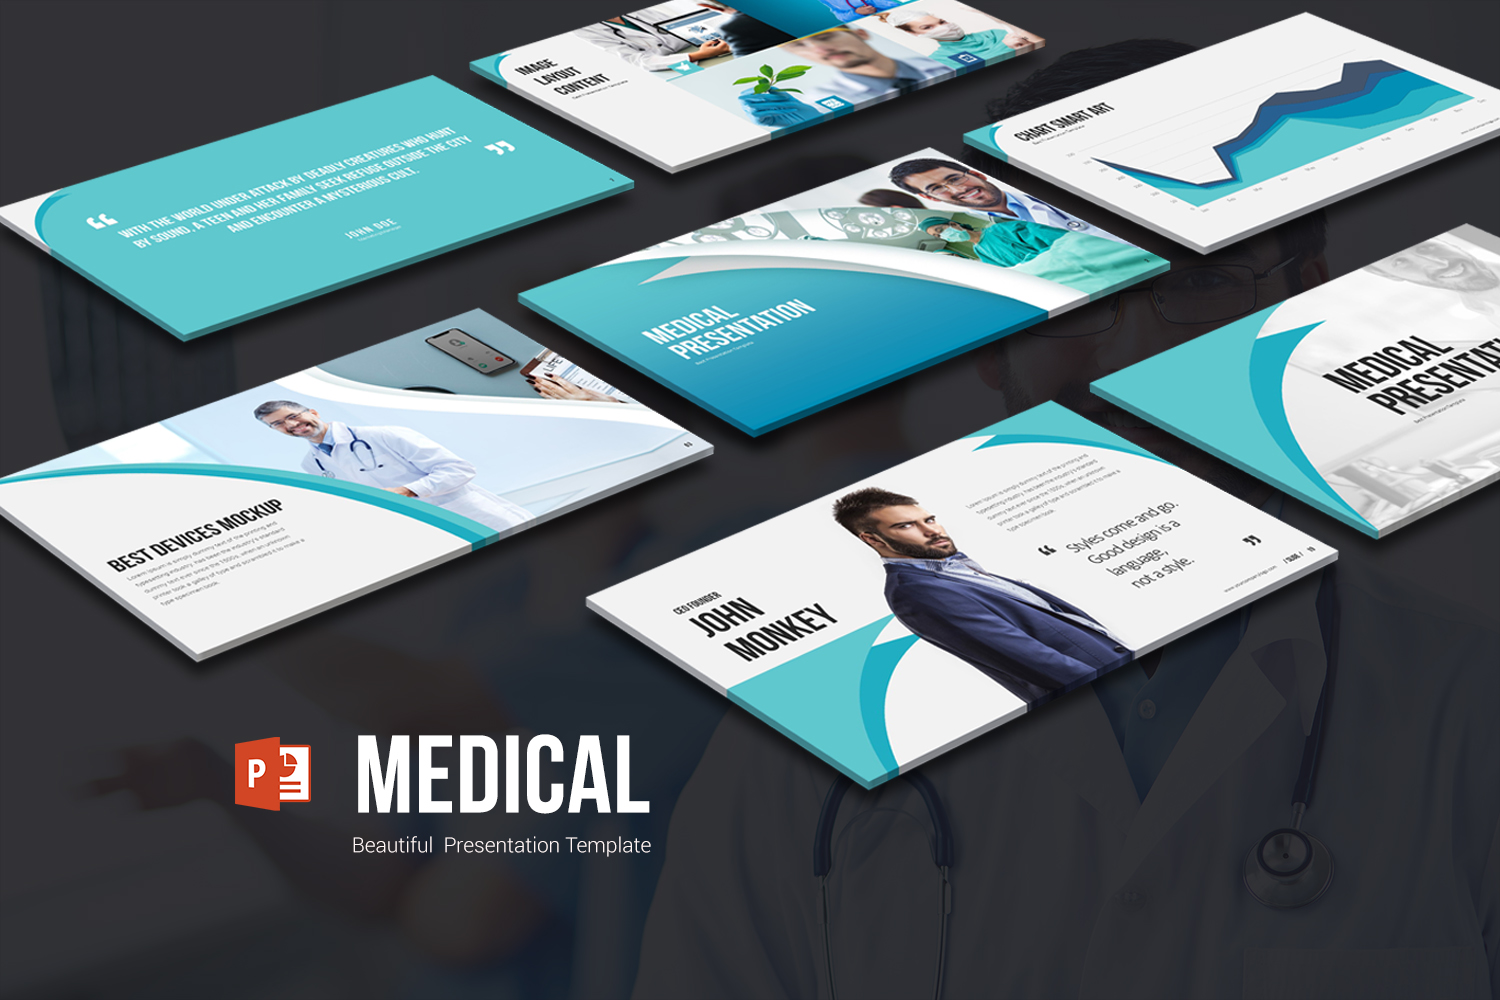 Medical Presentation Template PowerPoint №102241